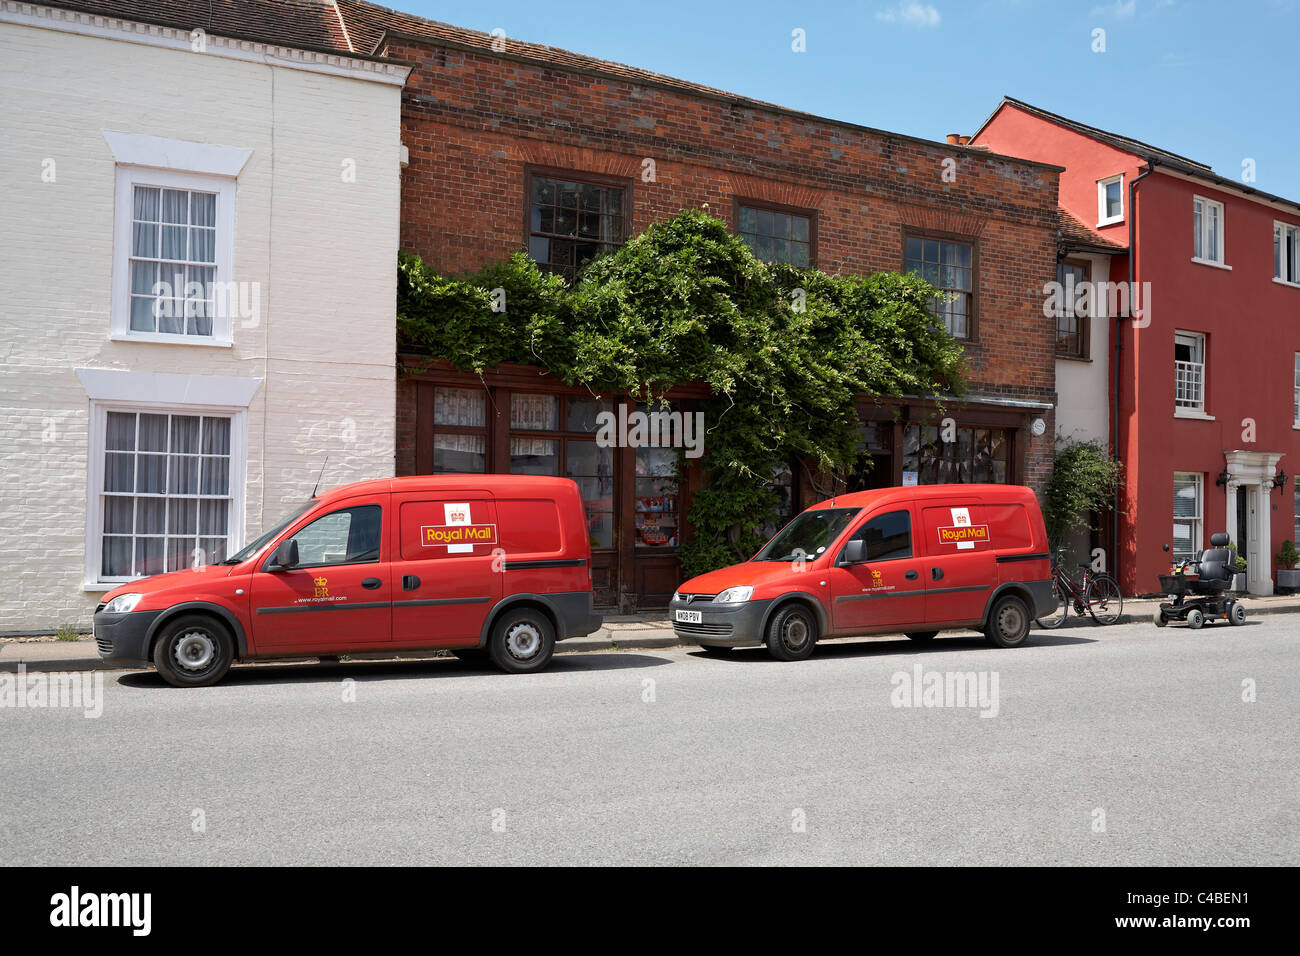 Great Britain Essex Nayland Village Post Office with Royal Mail Red Vans parked outside - Stock Image